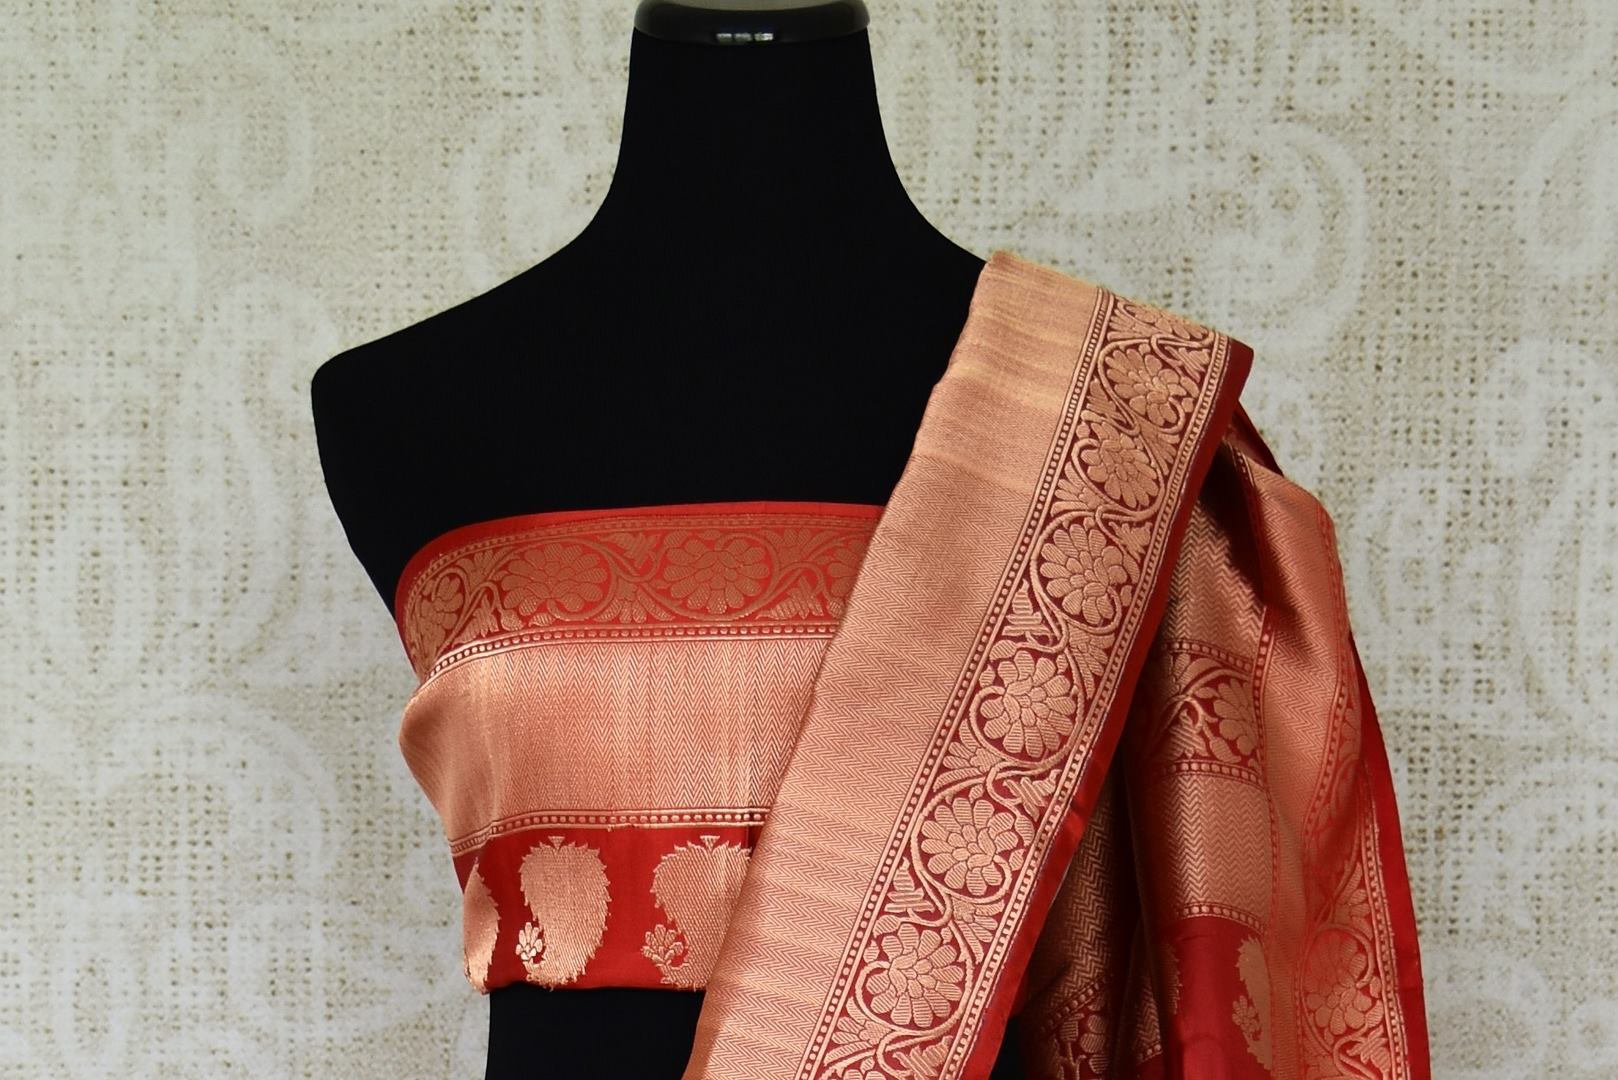 Strut in style in this grey banarsi silk saree with a stunning red zari border. It features an exquisite check pattern and glorious shine on the drape. Style this gorgeous sari with a contrast red zari detailed blouse. Shop kanjeevaram silk sari, georgette saree, chiffon sari online or visit Pure Elegance store, USA.-blouse pallu